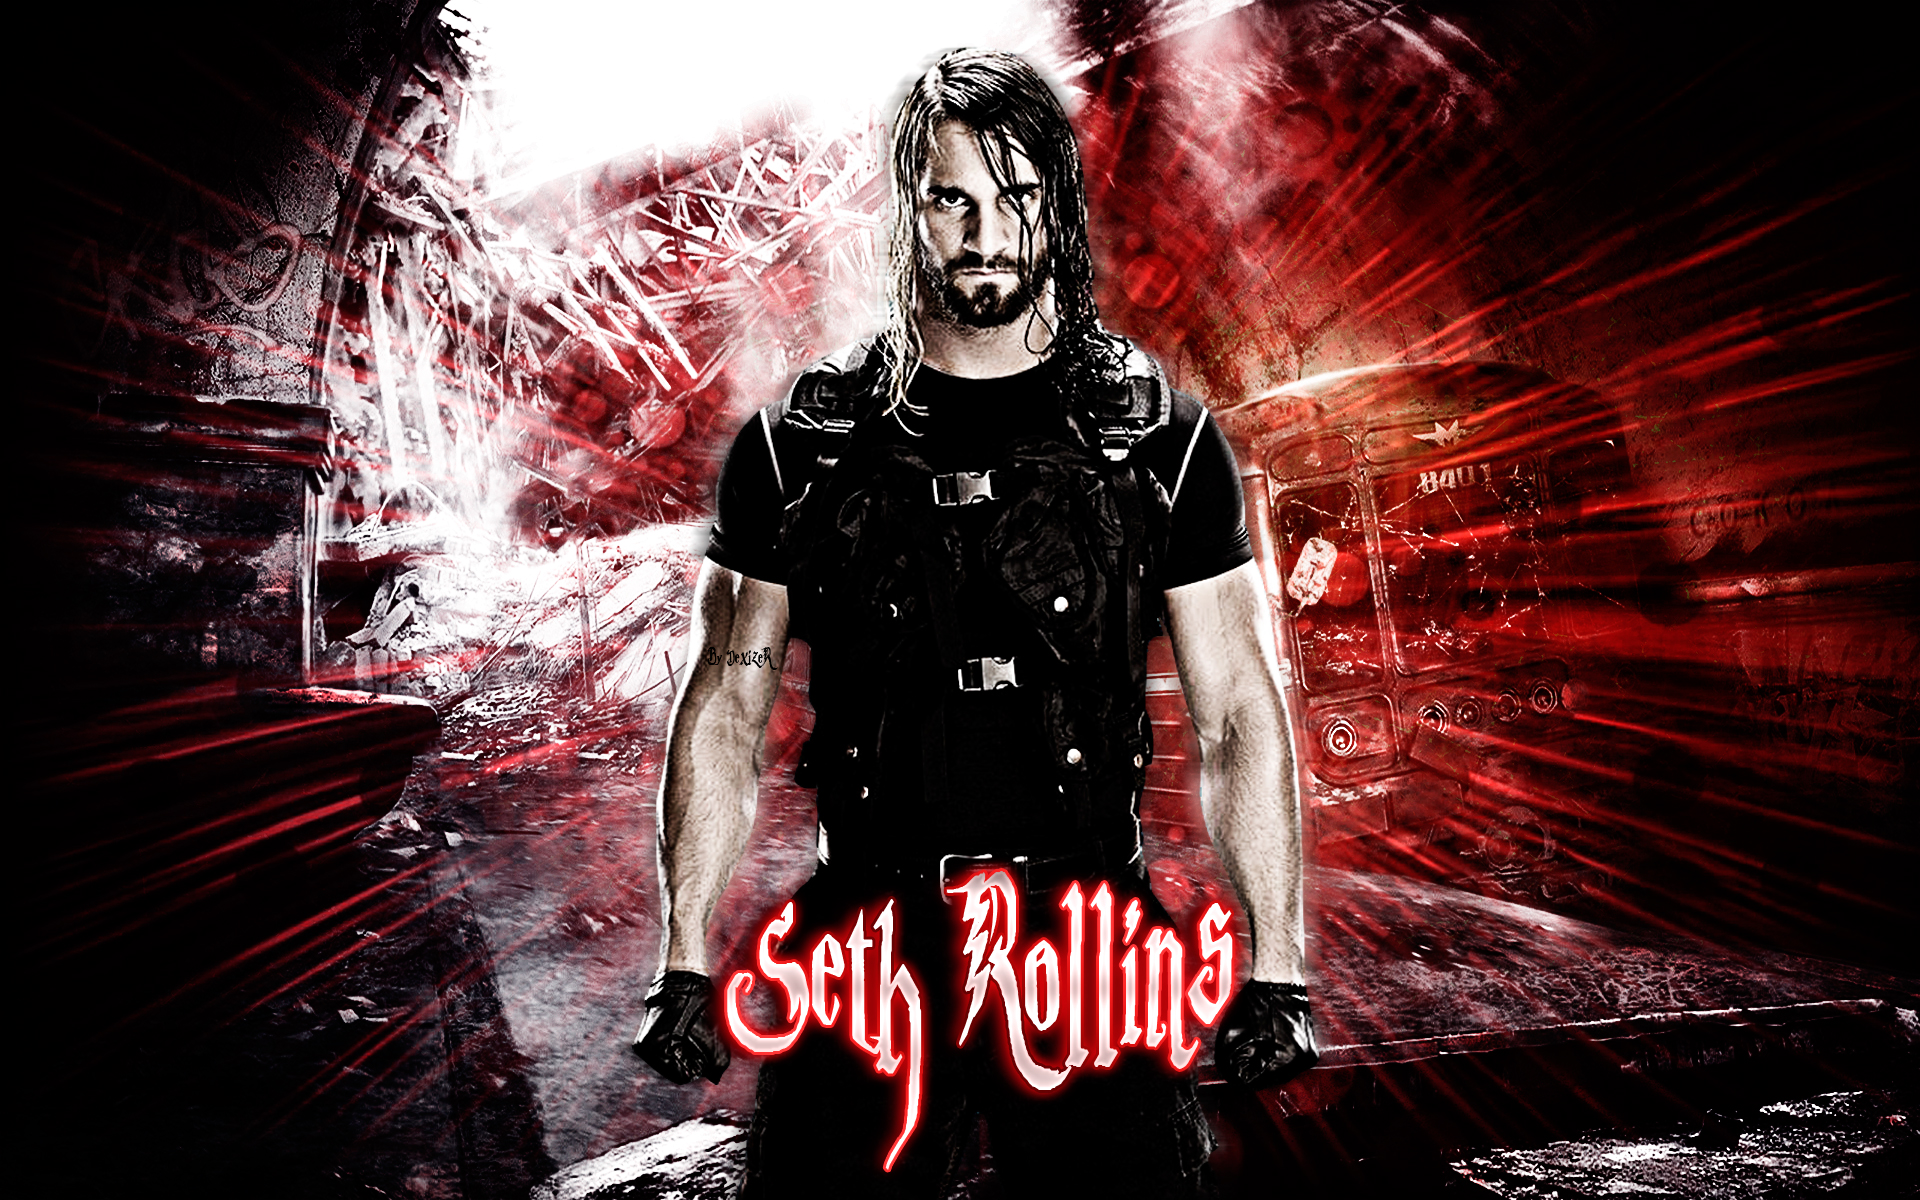 Seth rollins wallpapers wallpapersafari - Download pictures of the shield wwe ...